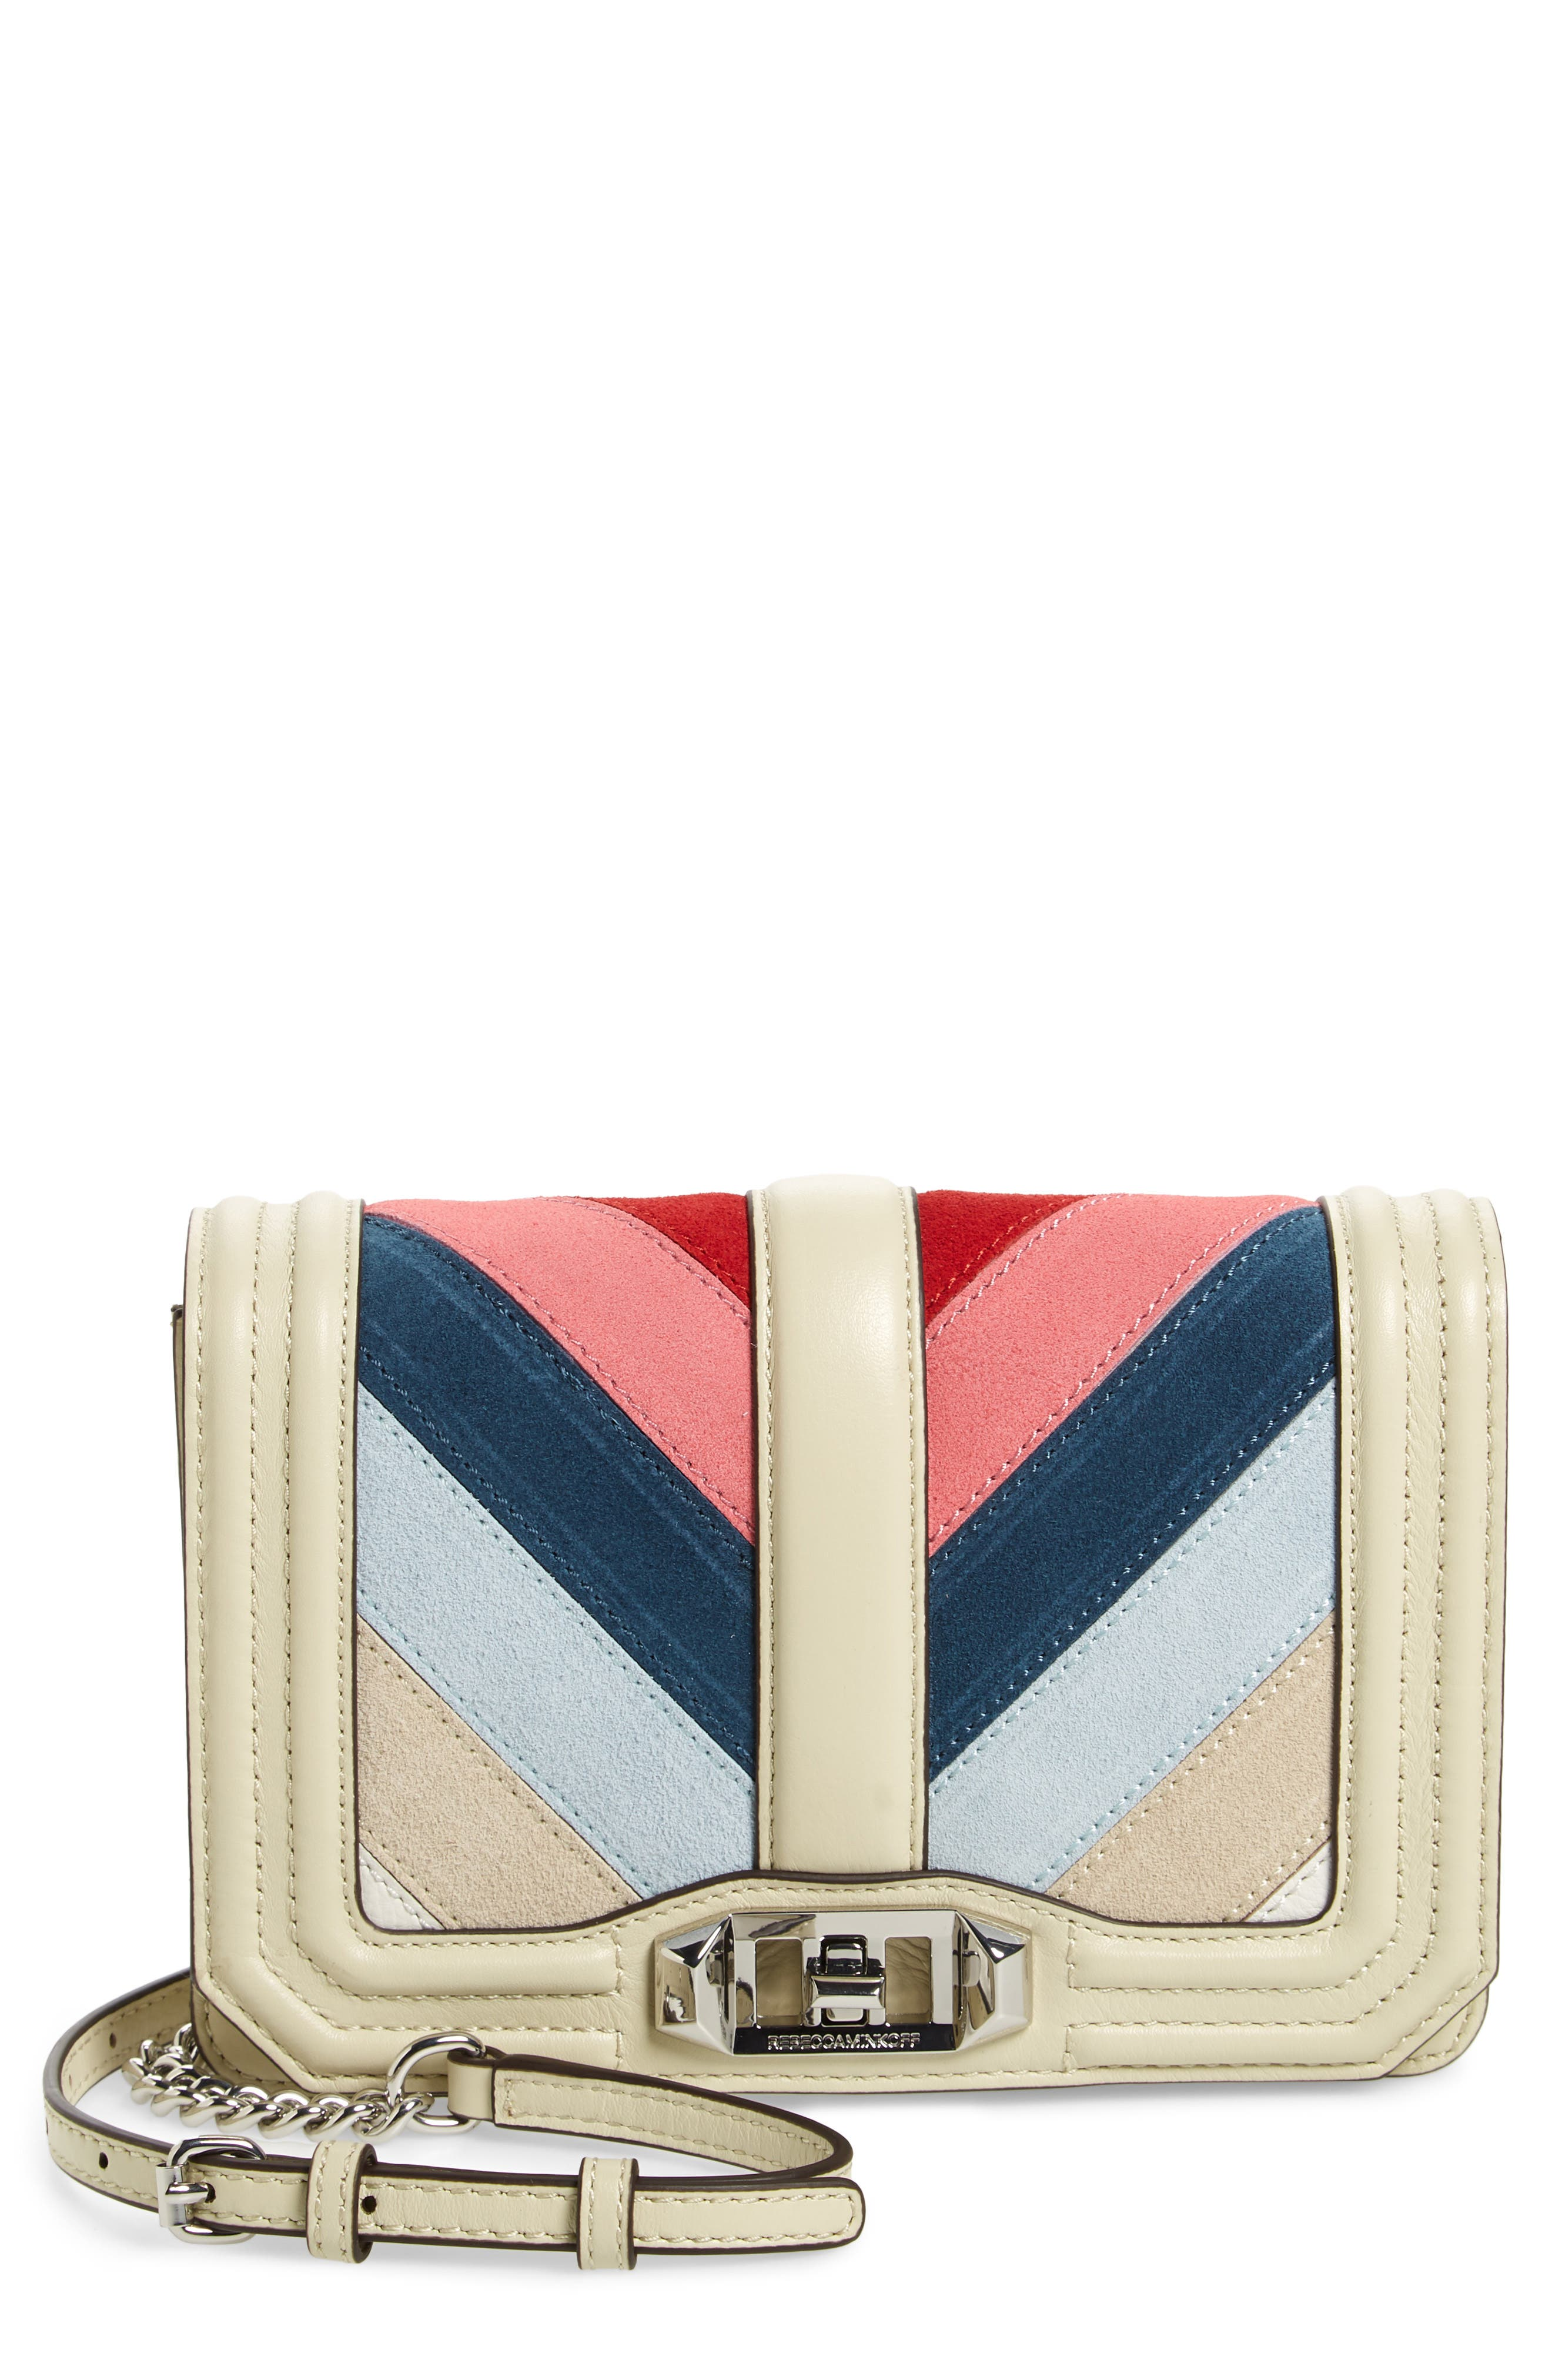 Small Love Chevron Patchwork Crossbody Bag,                         Main,                         color, PINK MULTI